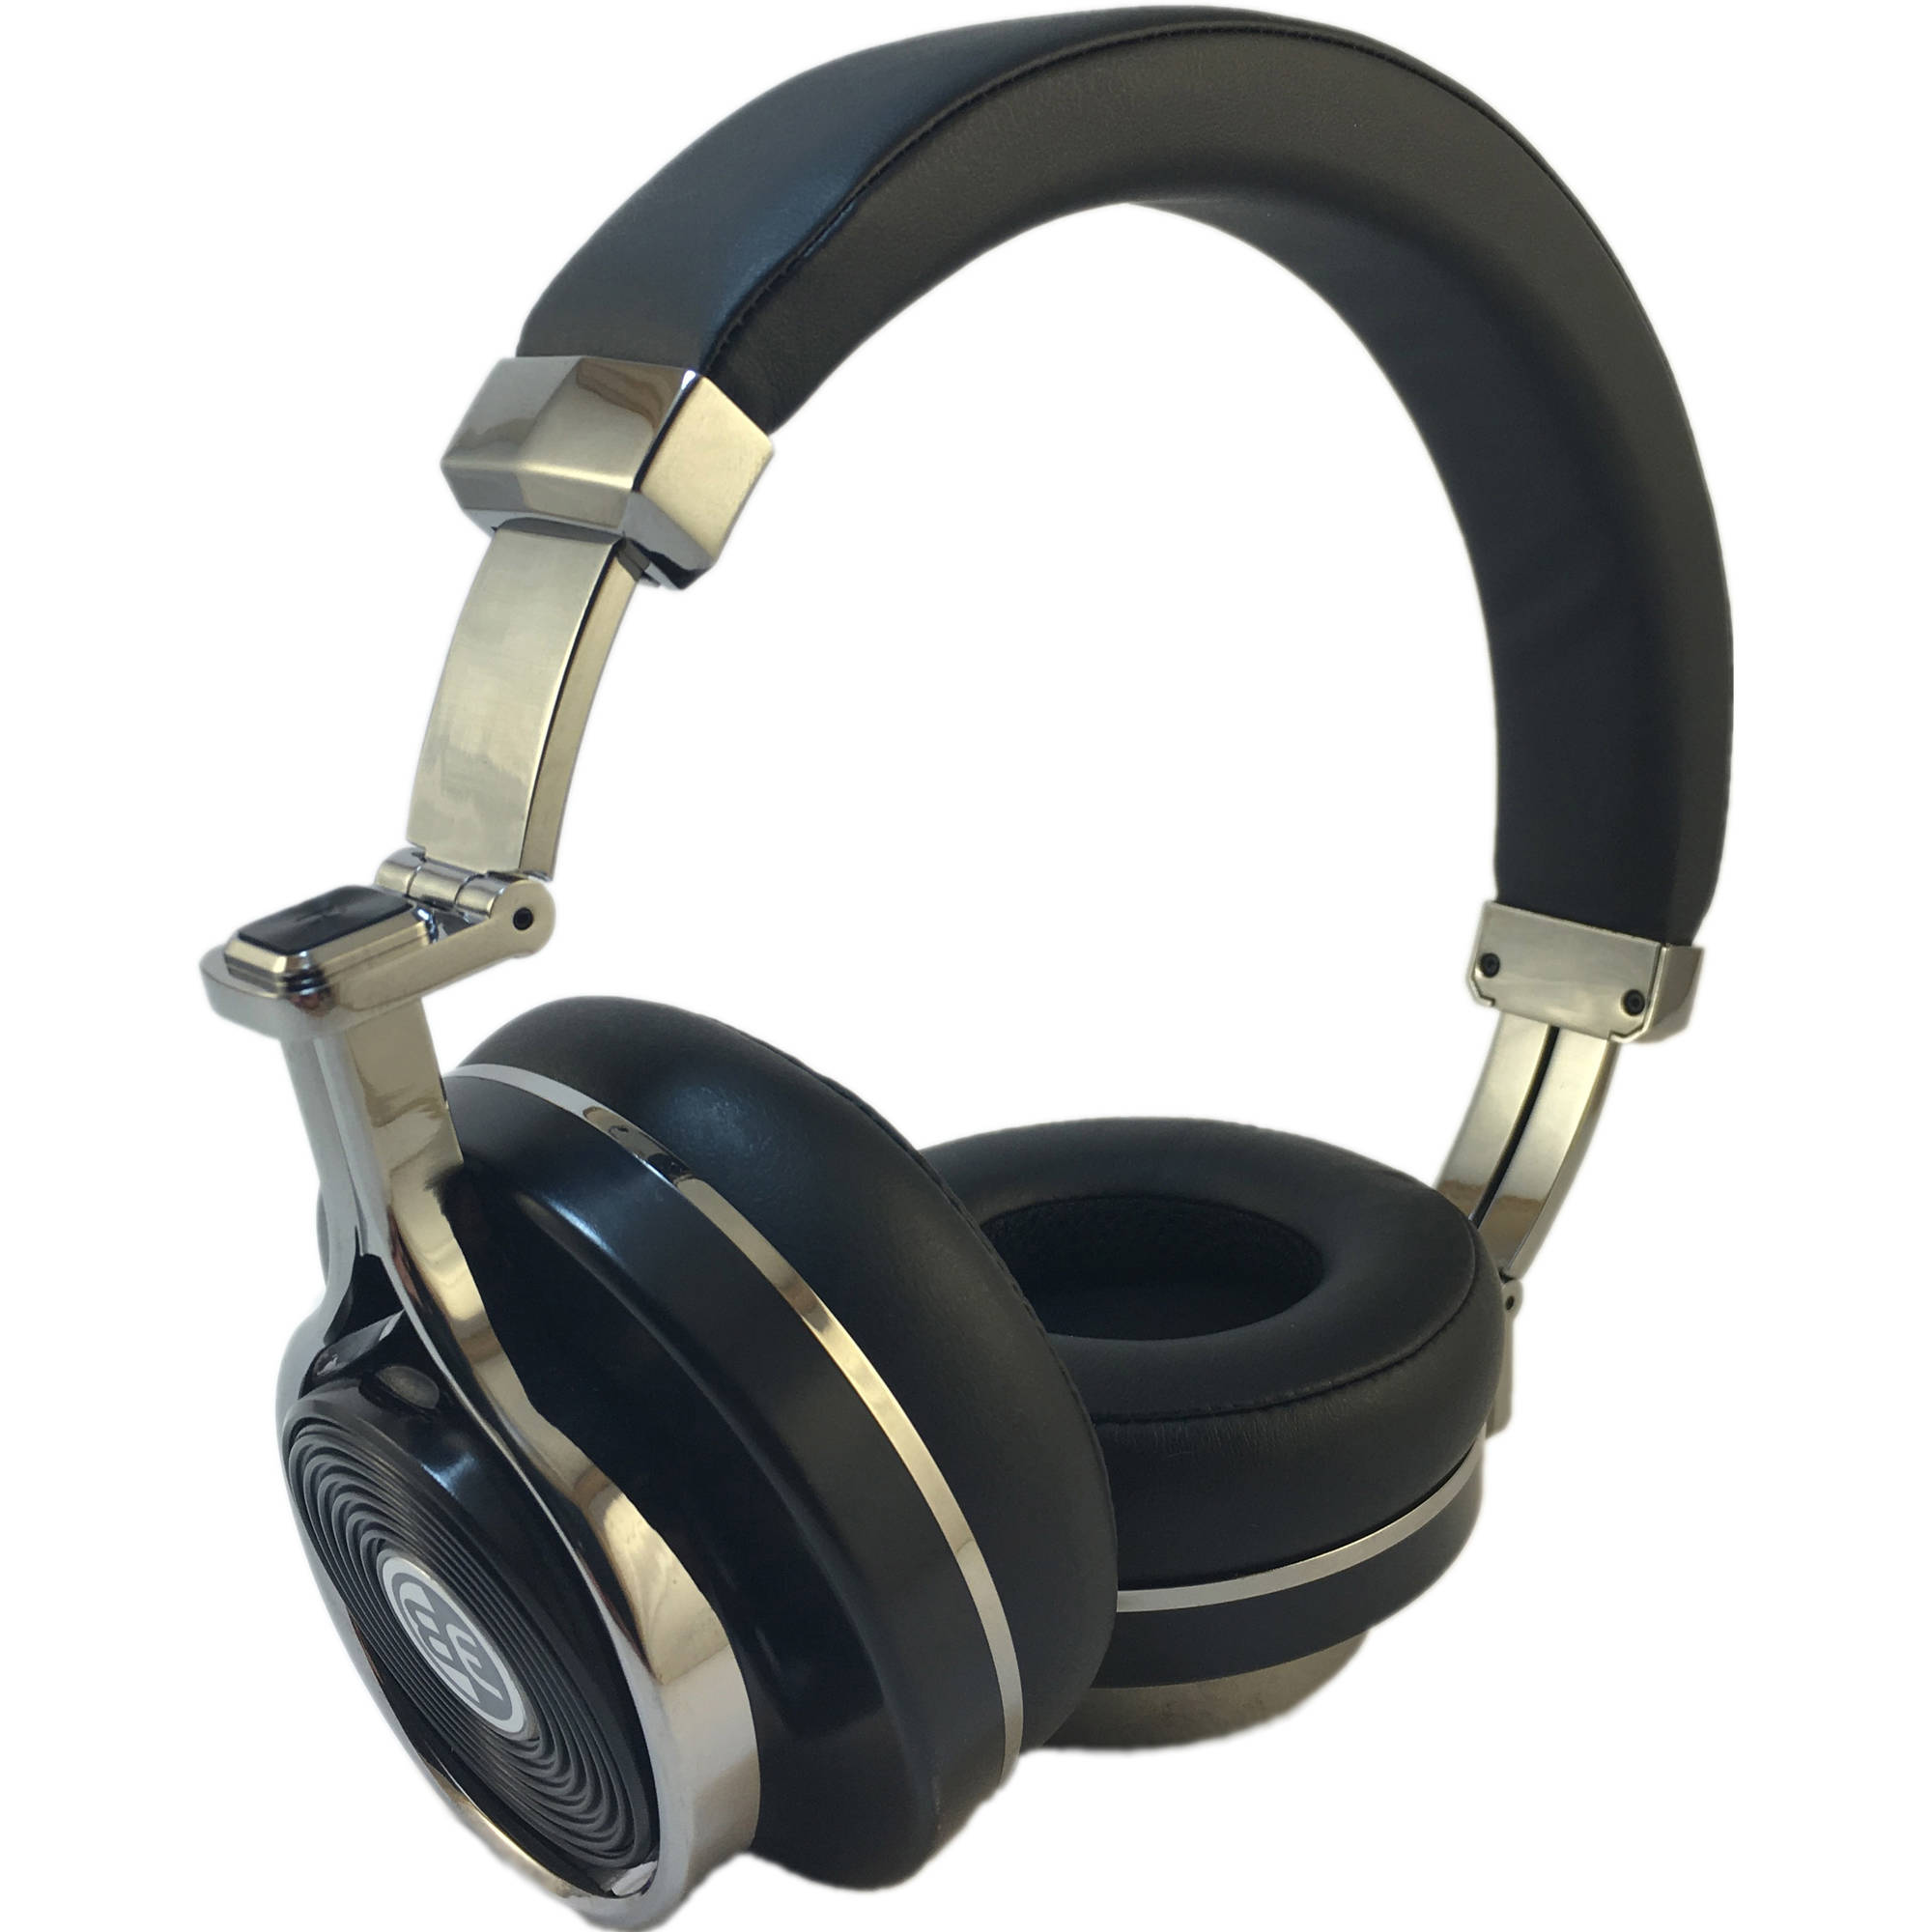 Bass Effect Audio TIII+ Wireless Bluetooth Headphones